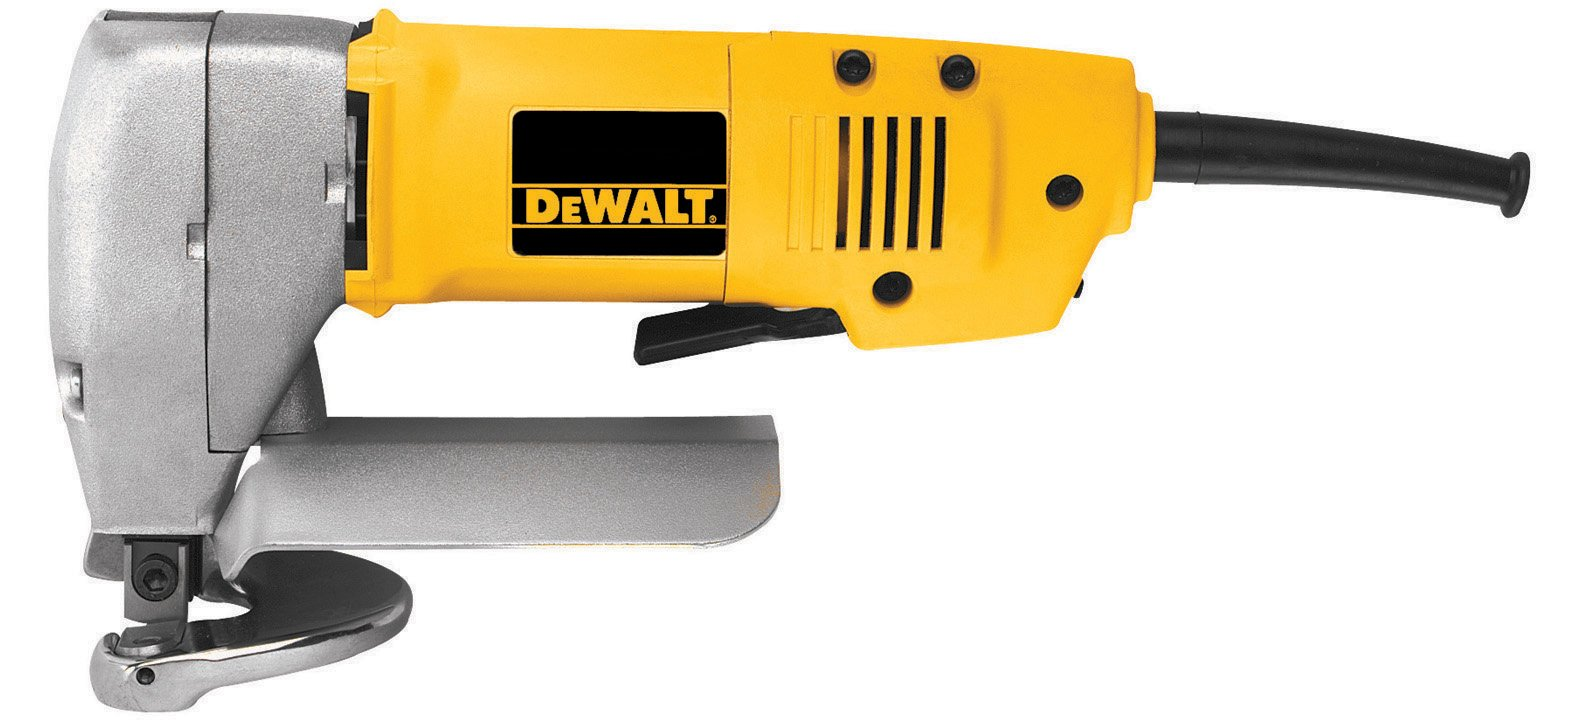 DEWALT DW892 14 Gauge Shear by DEWALT